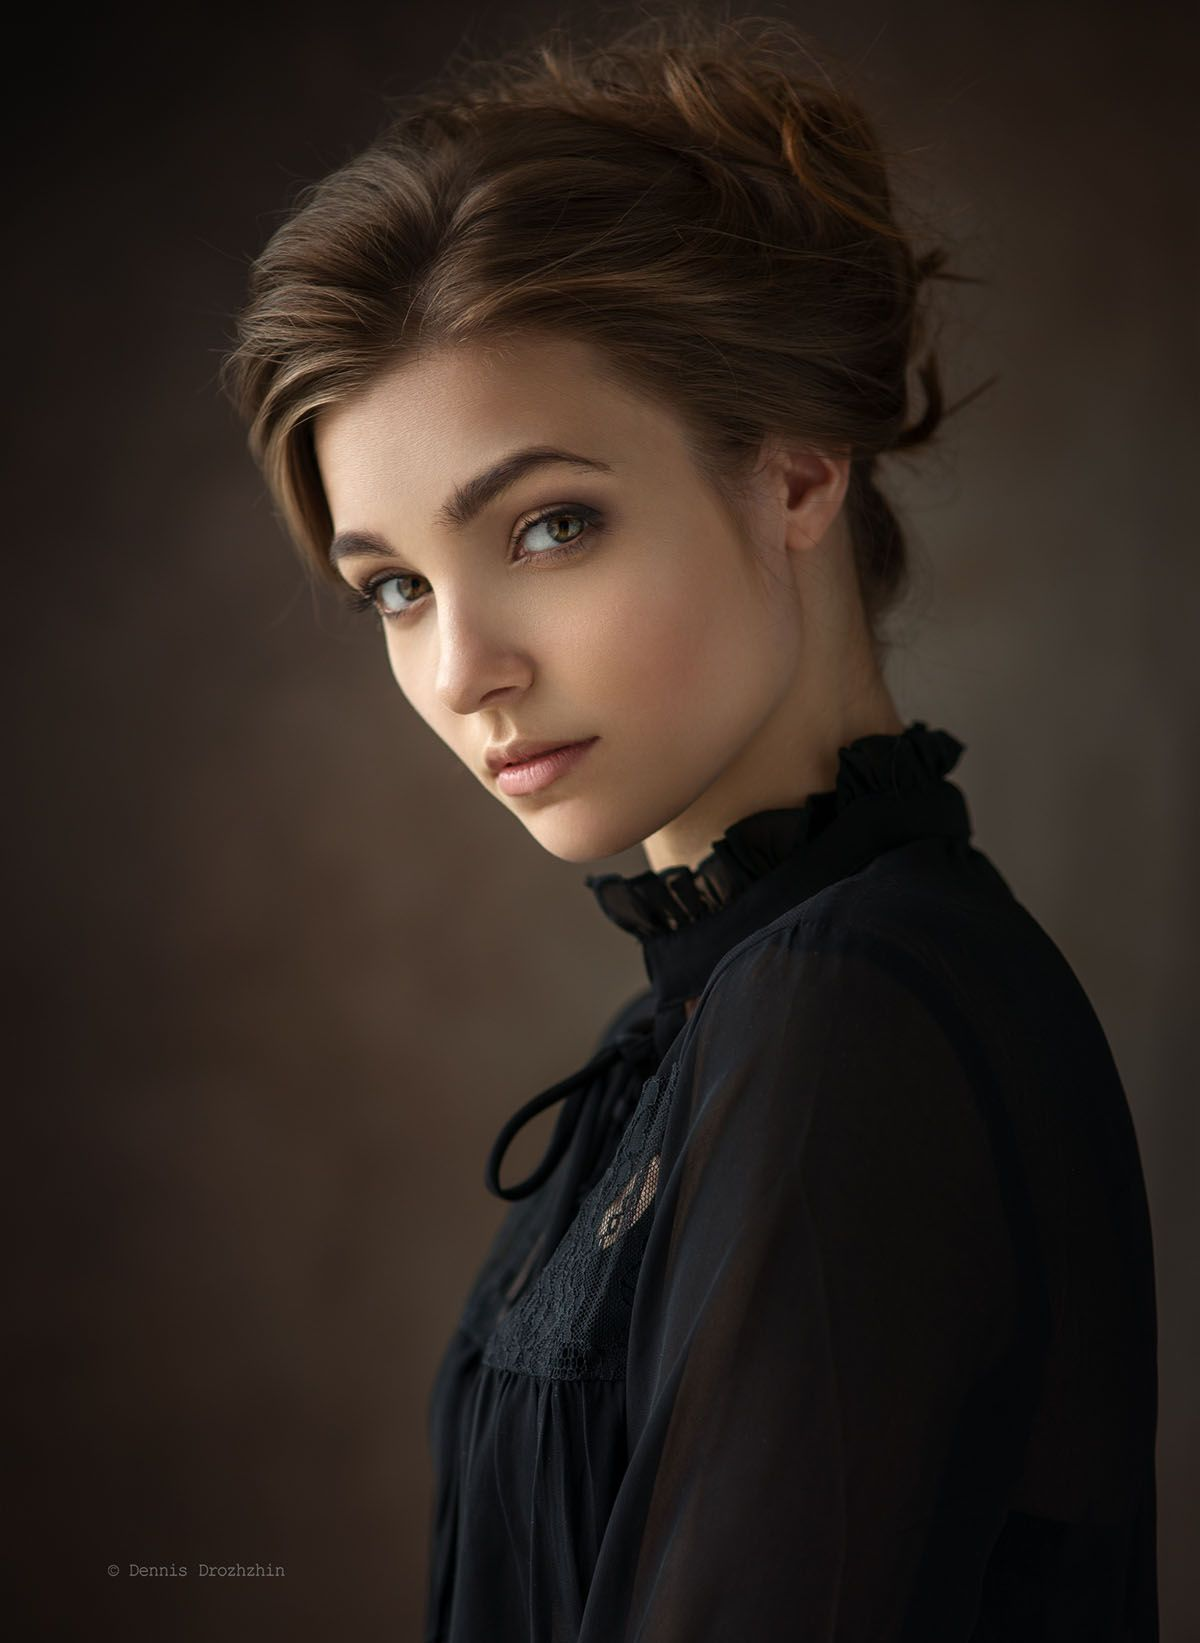 50 Professional Portrait Photography Examples From Top